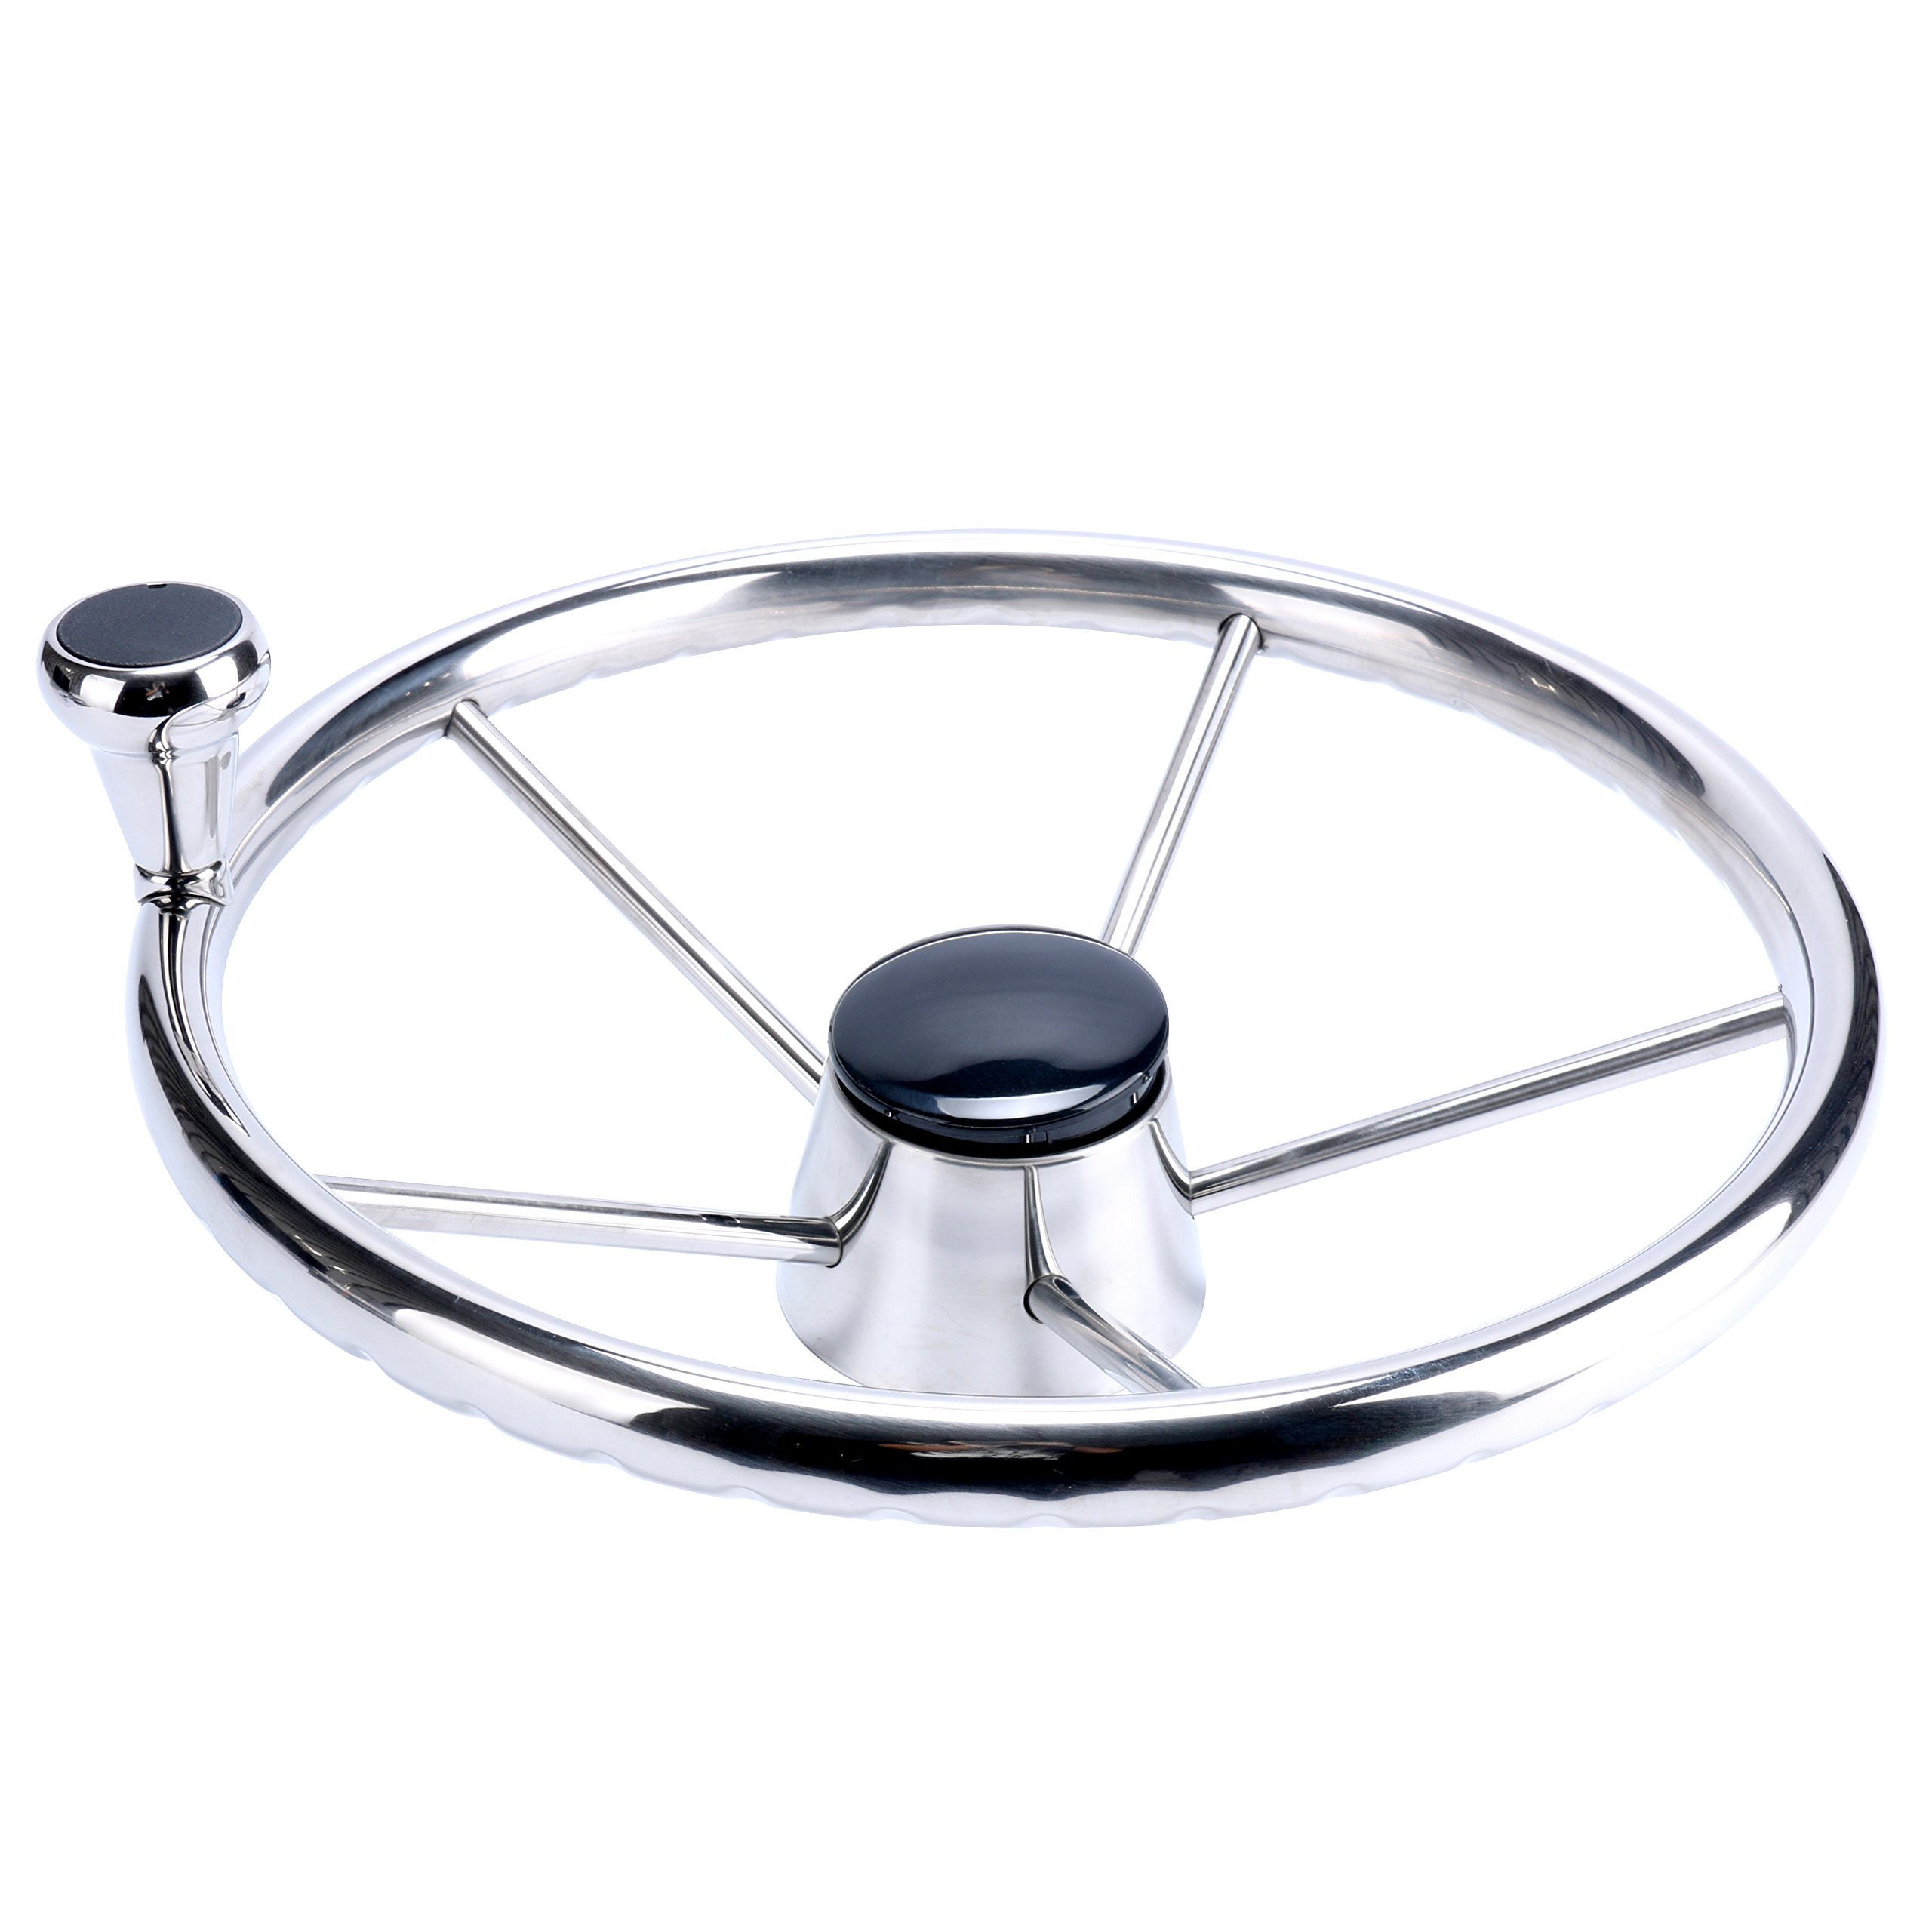 Amarine-made 5-Spoke 13-1/2 Inch Destroyer Style Stainless Boat Steering Wheel with Big Size Knob - XK-9310SRF1 by Amarine Made